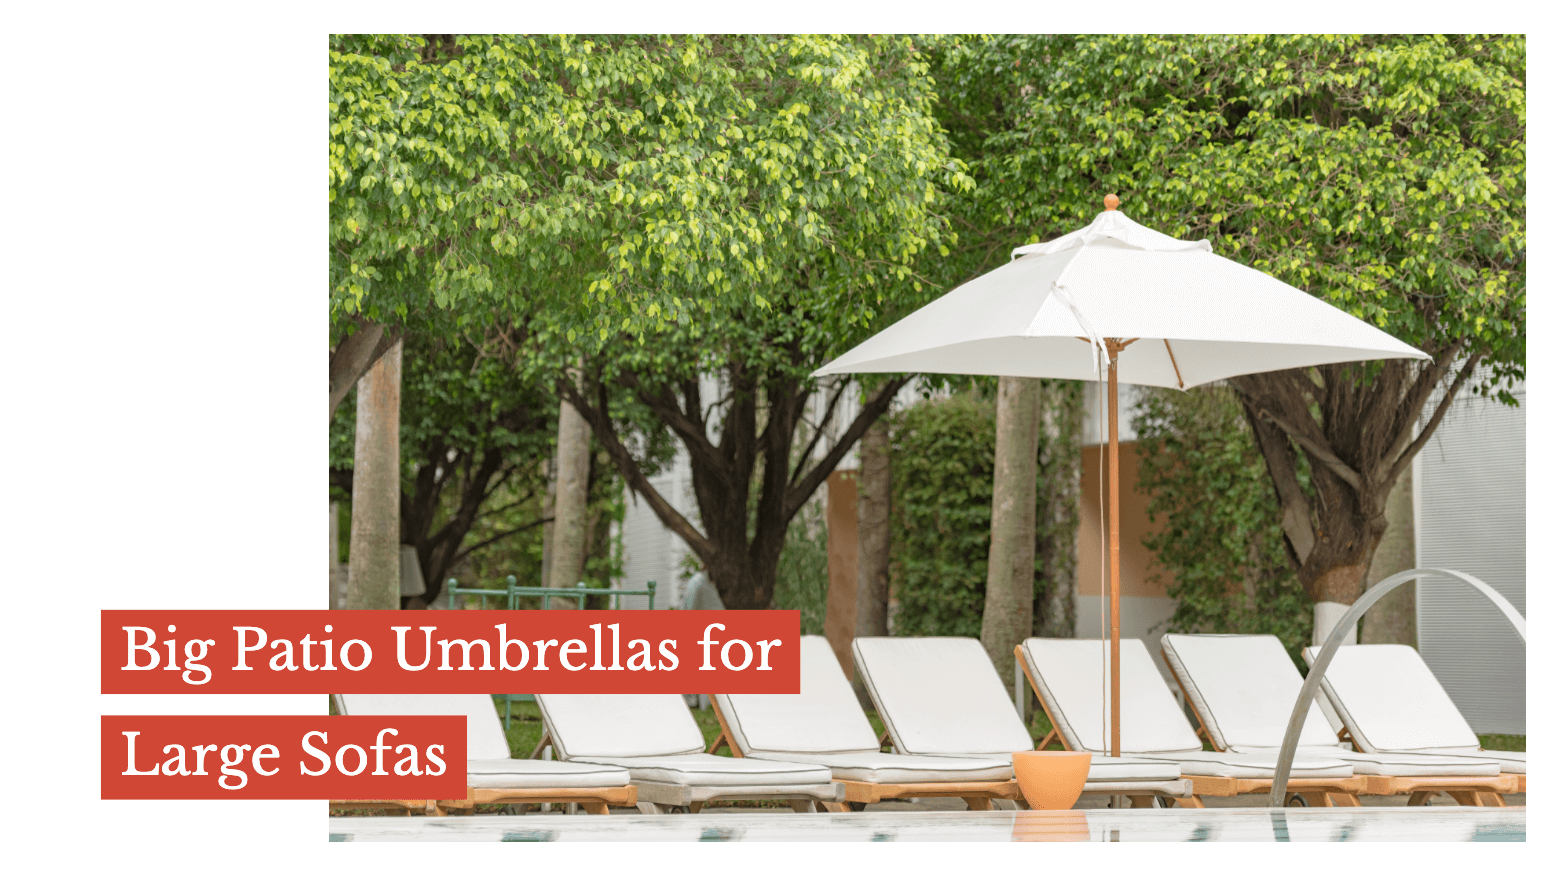 Big Patio Umbrellas for Large Sofas